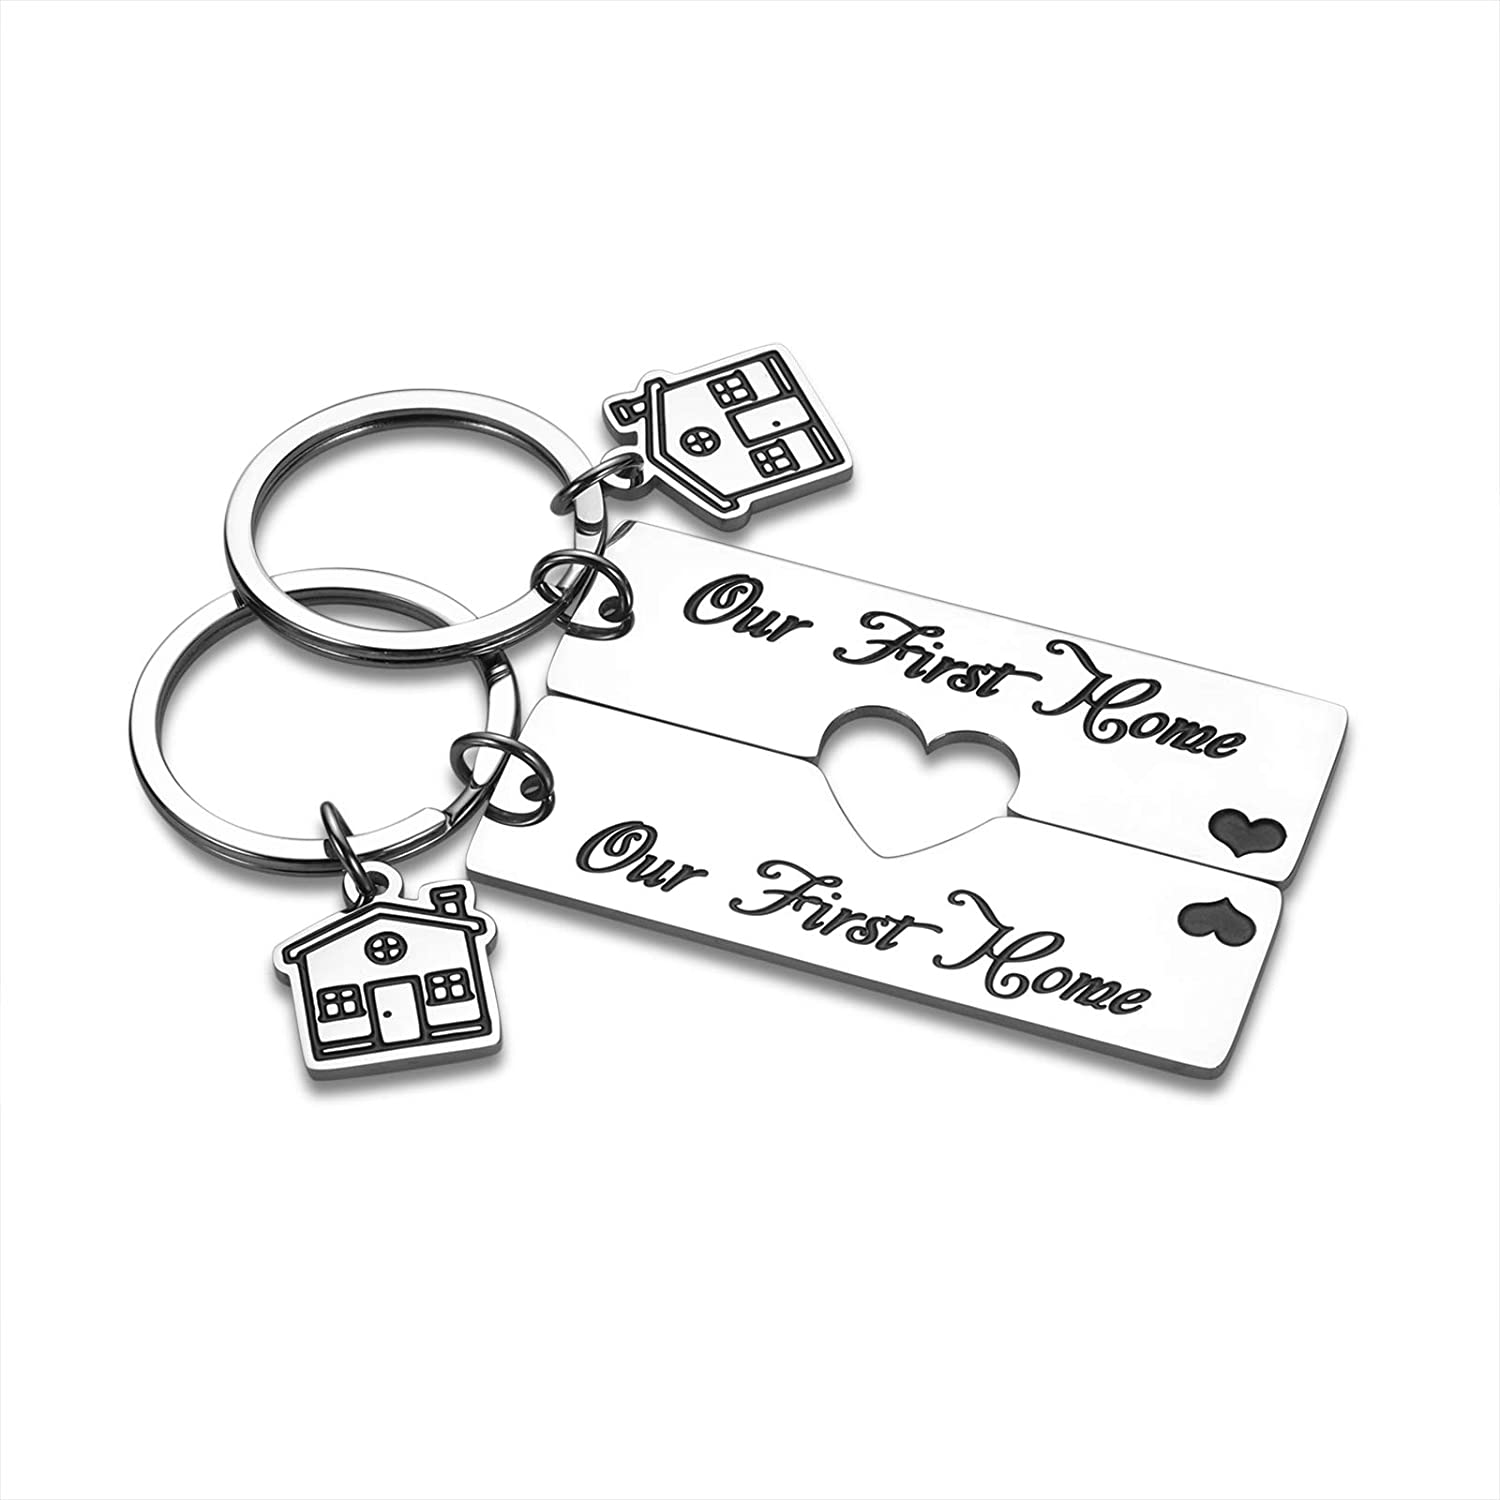 2 Pcs 2021 New Home Gifts Our First Home Keychain for Home Housewarming Gifts for New Homeowners Realtor Gifts for Women Men House Gifts Couple Friend Daughter New Home Keychain House Warming Presents Moving in Keyring Matching Keychain Jewelry